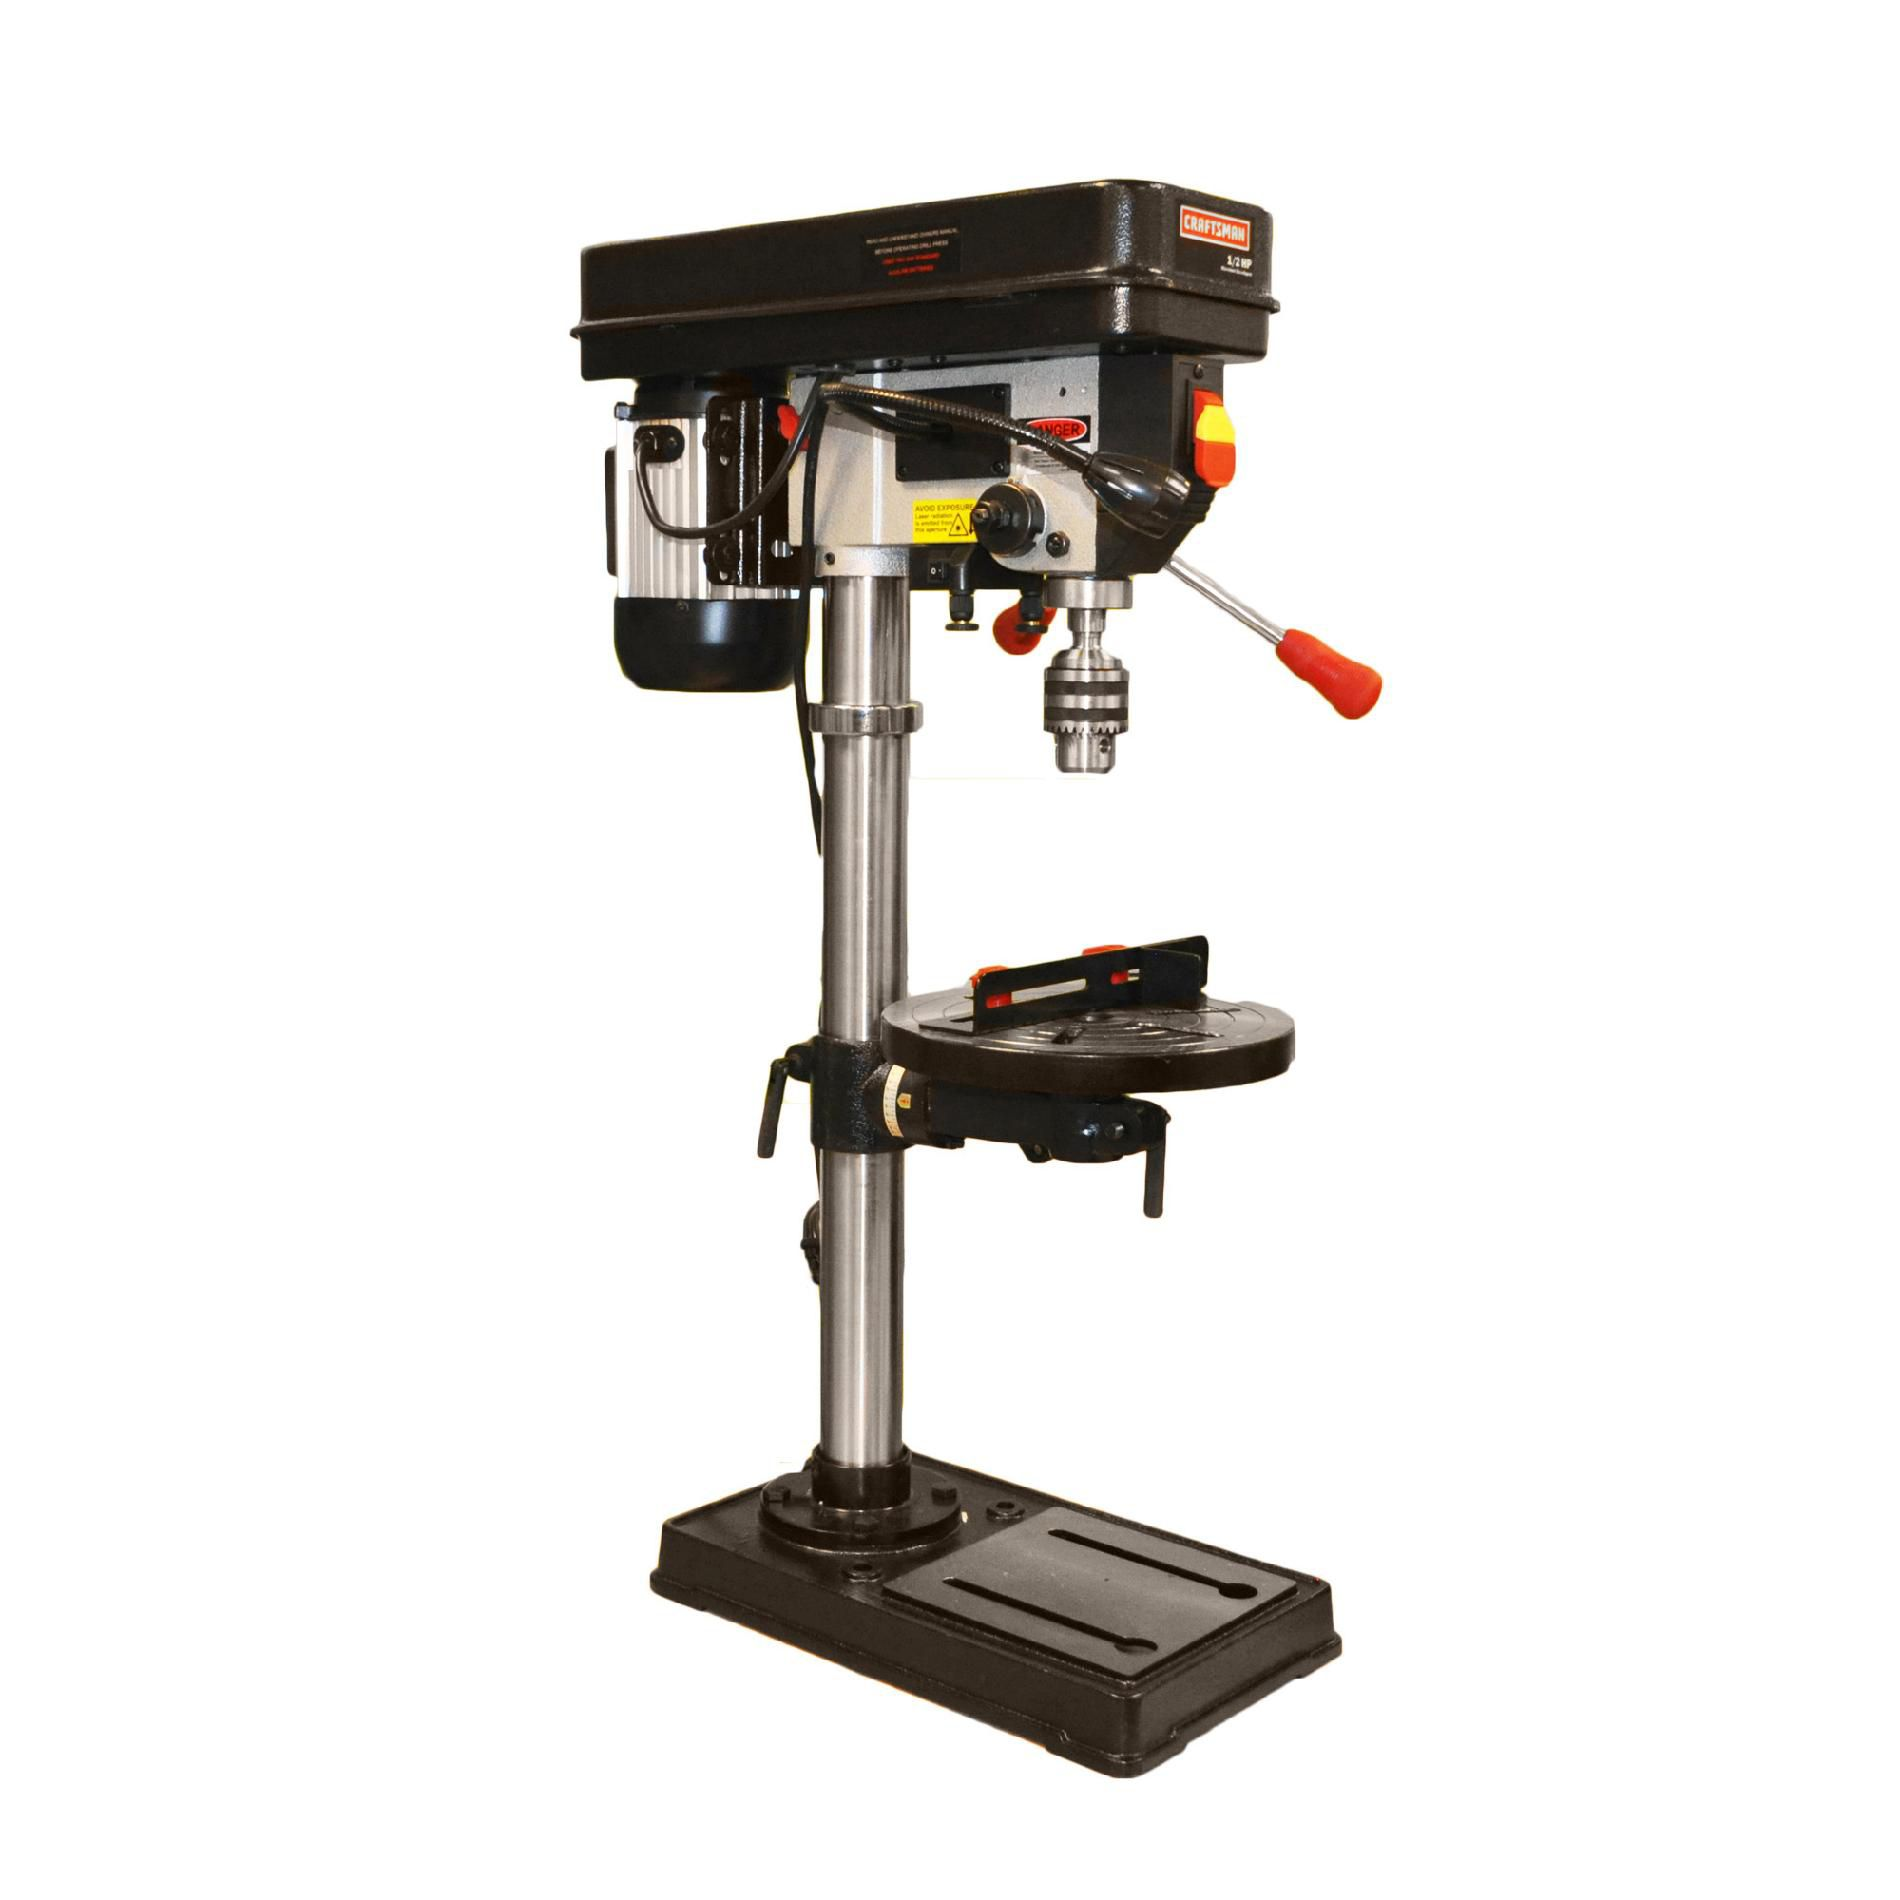 Craftsman 20 Inch Drill Press